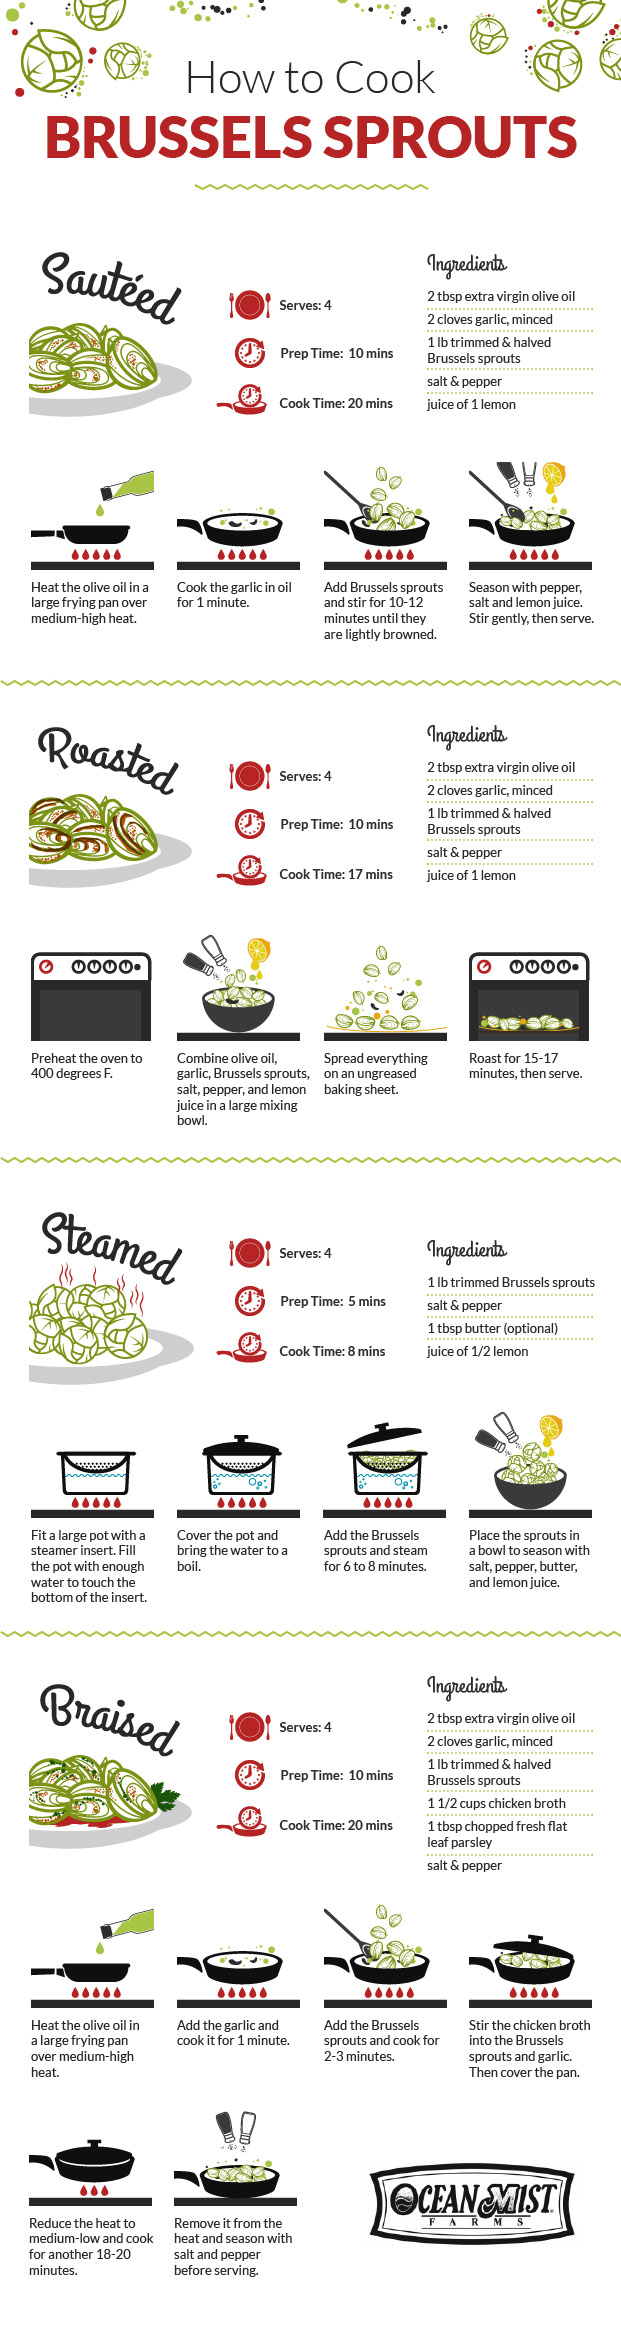 How to Cook Brussel Sprouts